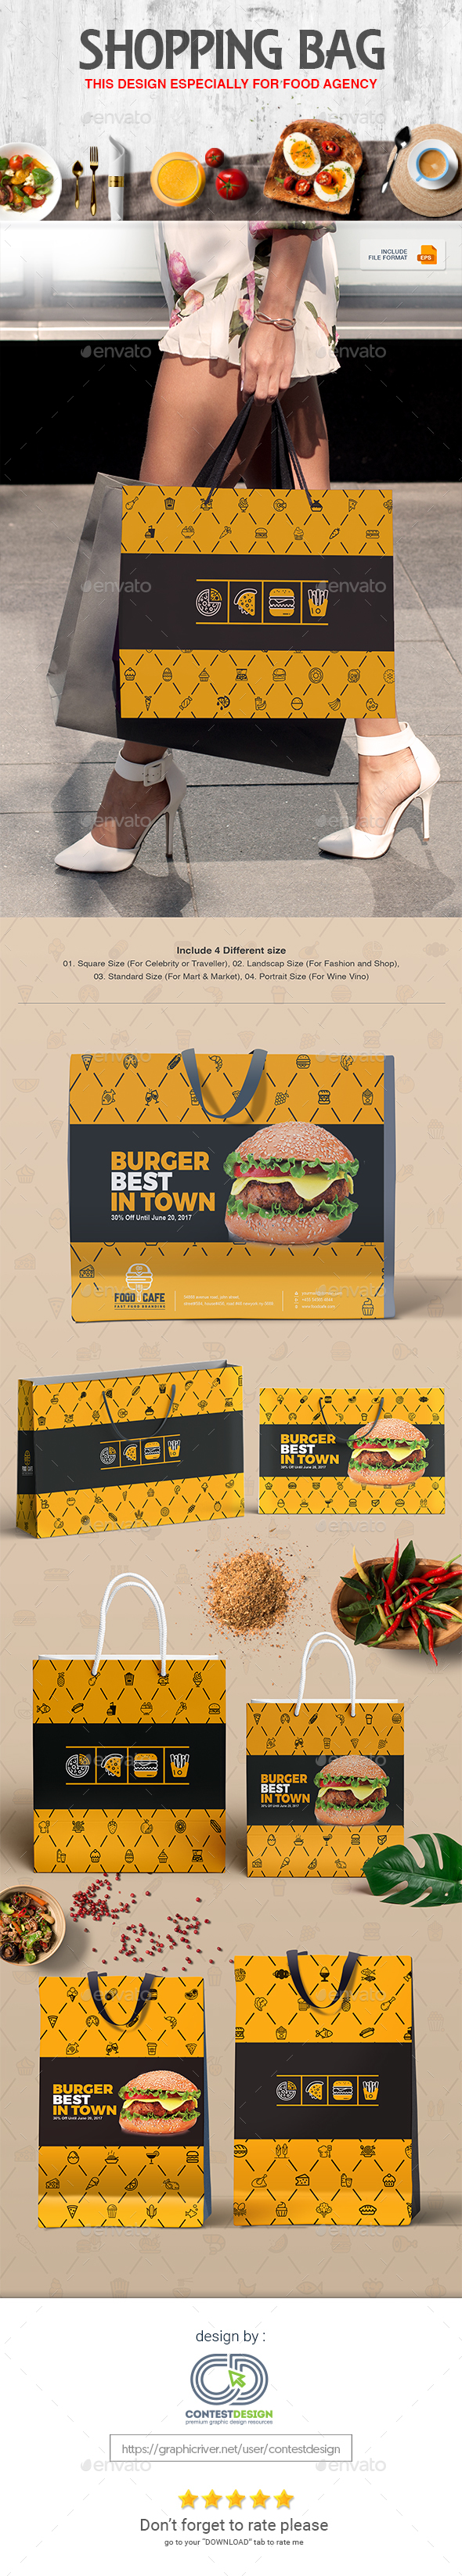 Shopping Bag Design Template for Fast Food / Restaurants / Cafe - Packaging Print Templates